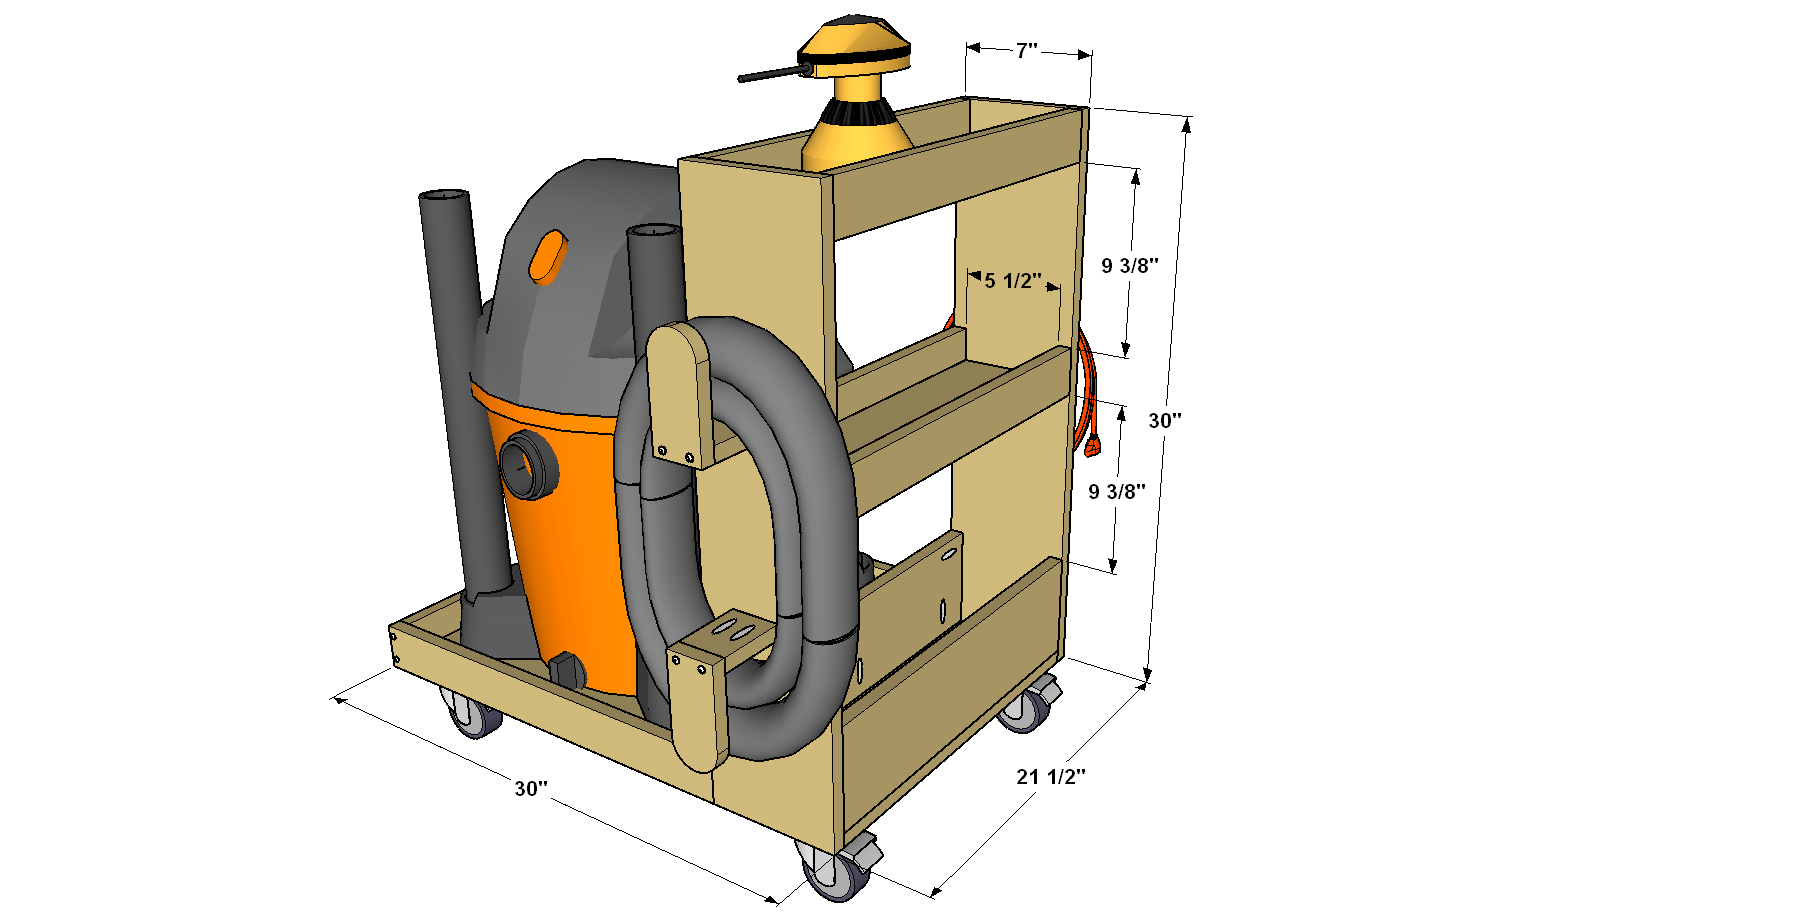 shop-vacuum-cart-with-onboard-storage-overall-with-dimensions